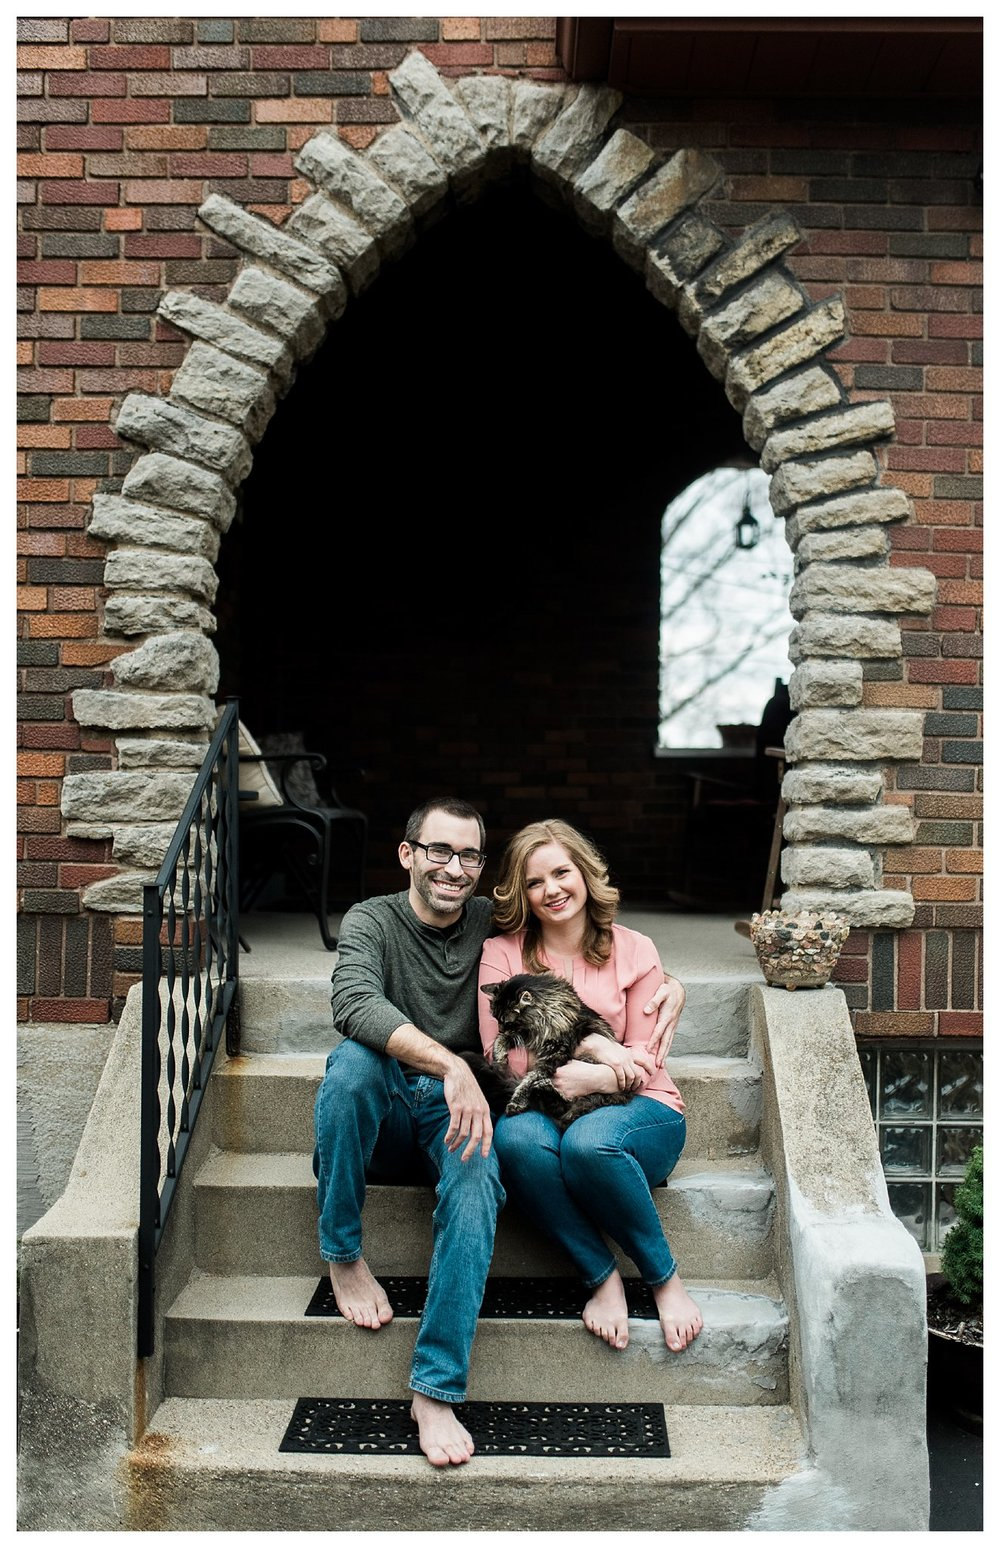 everleigh-photography-cincinnati-wedding-photographer-in-home-engagement-session-hannah-and-nathan-21